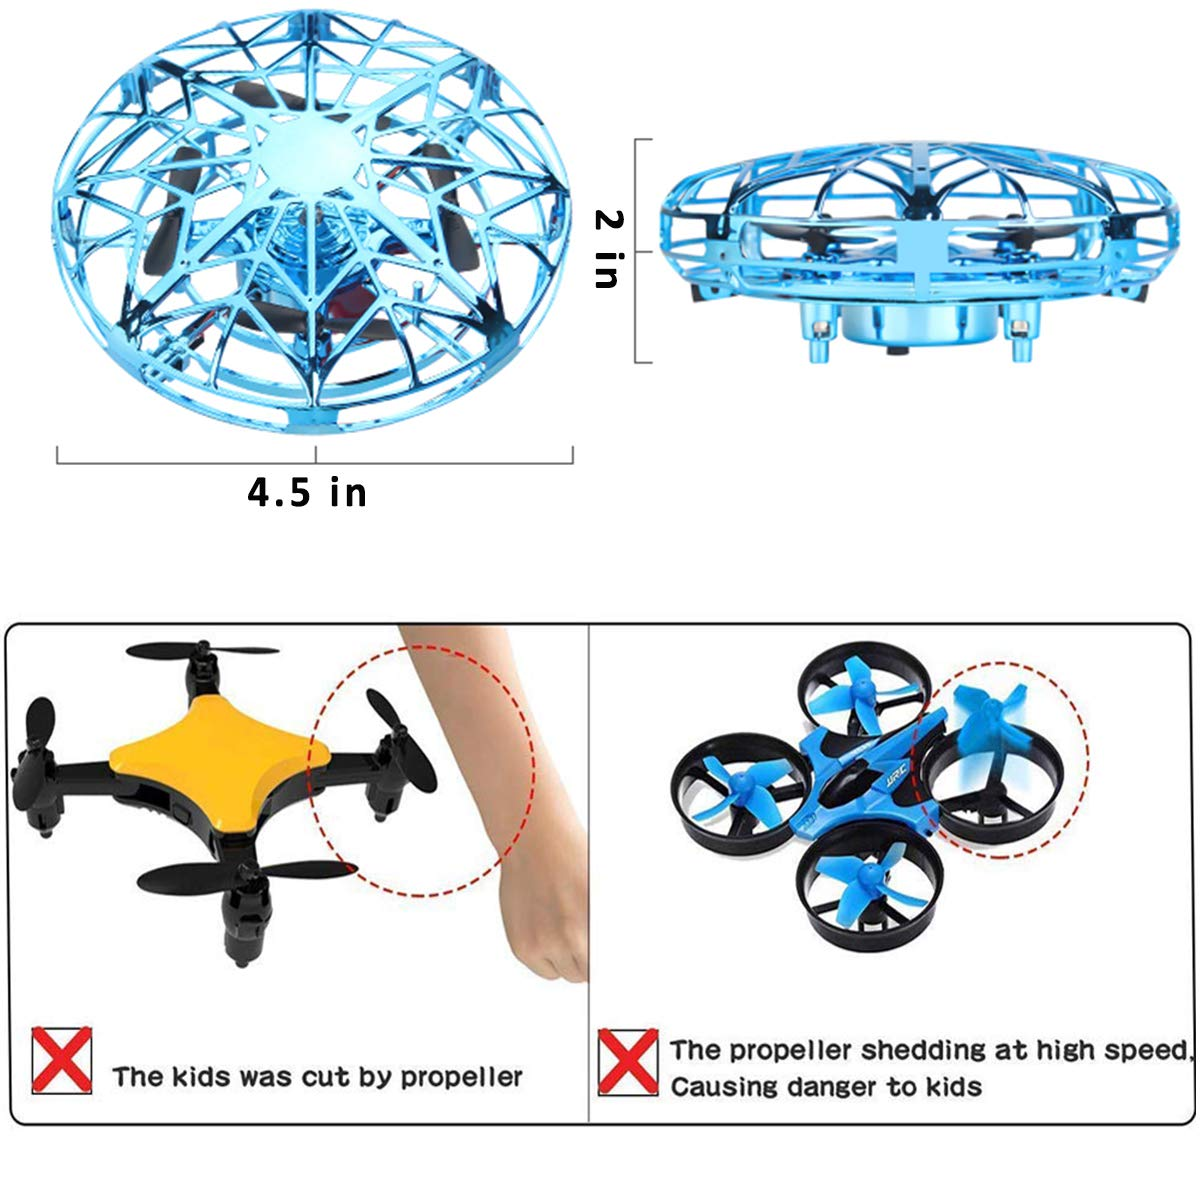 Flying Toy Ball Rc Toys Induction Flying Toy Mini Drones Helicopter Airplane with LED Lights Hand & Remote Controlled for 3+ Kids Girls Boys Indoor and Outdoor Gifts for Birthday (Flying Ball UFO) by HDsuit (Image #3)